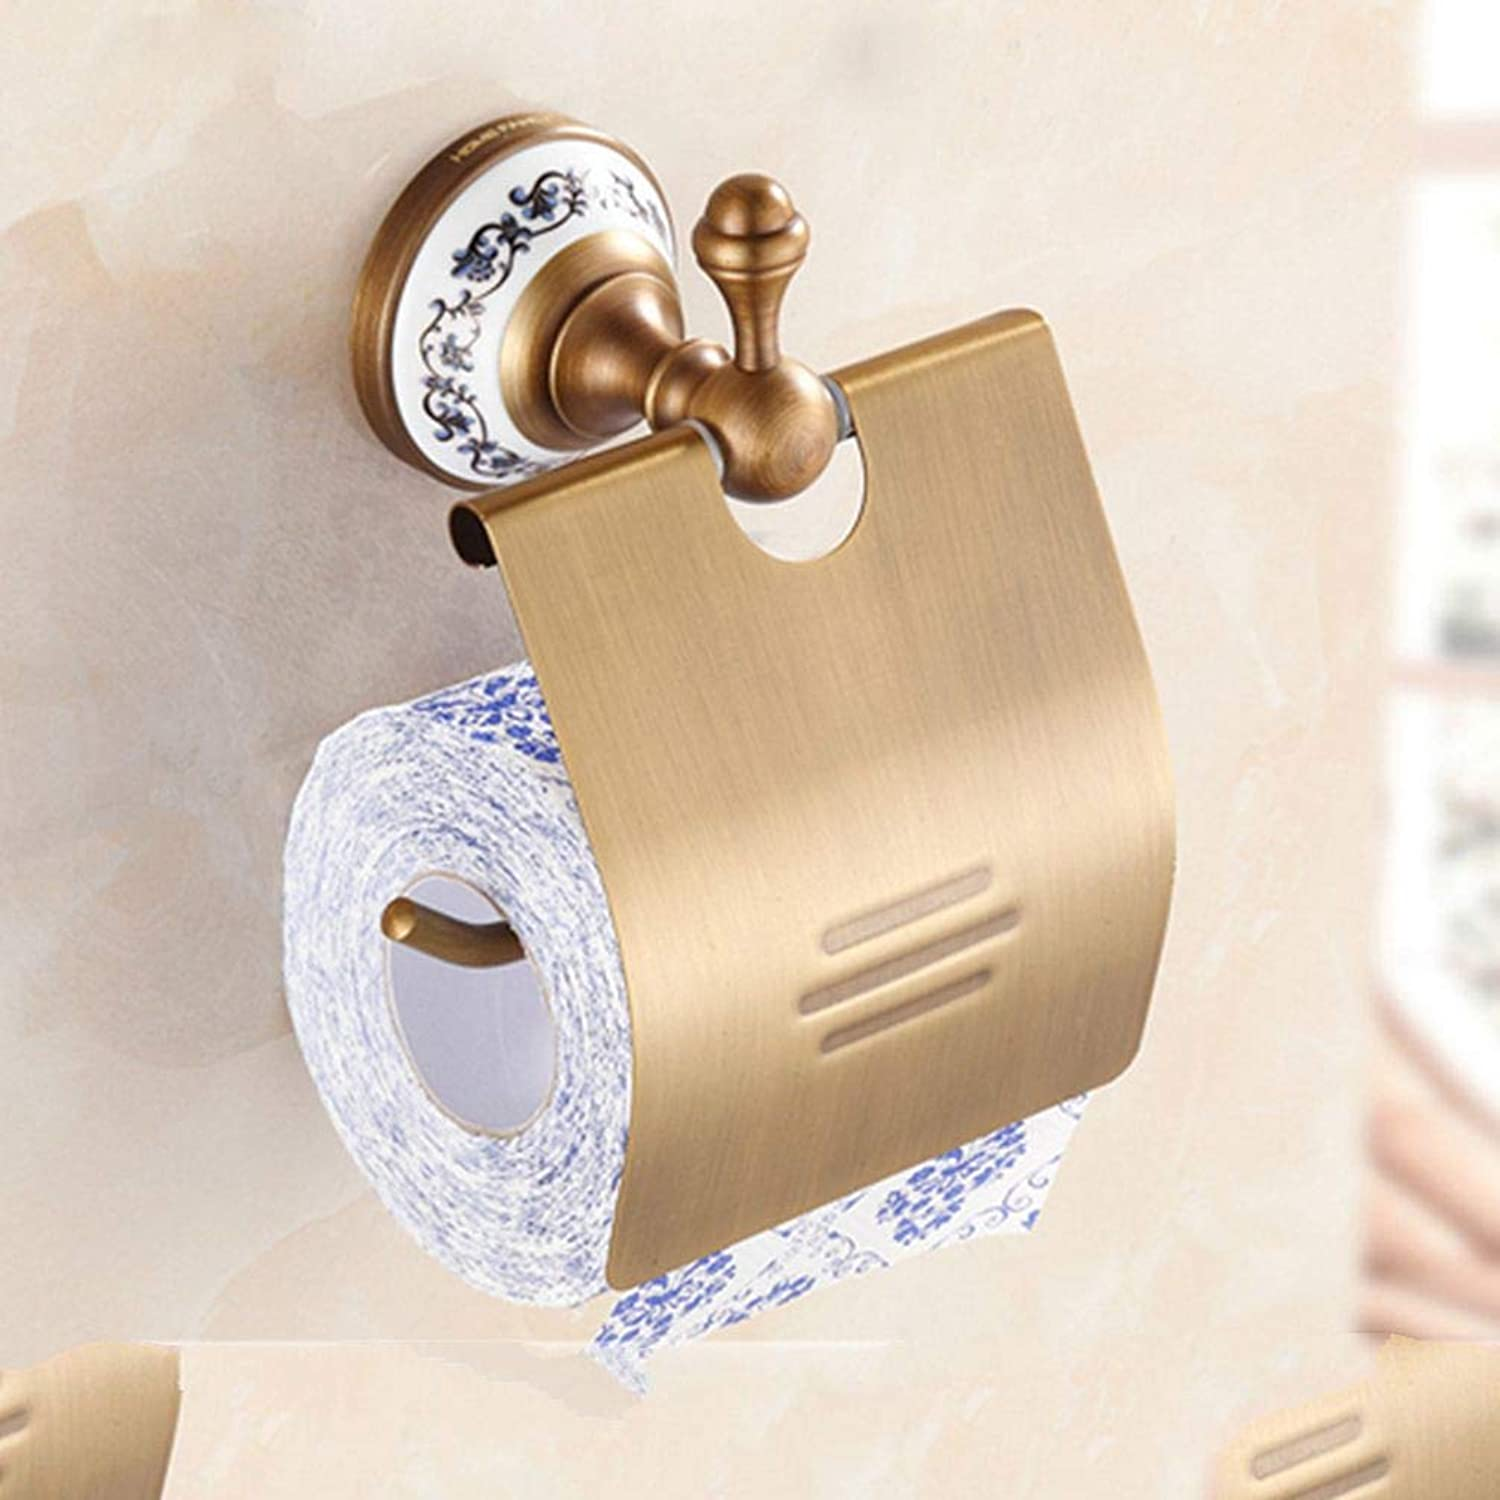 LUDSUY Wall Mounted Toilet Paper Holders Antique Brass Creative Bathroom Roll Paper Rack Rod,BBathroom Accessories